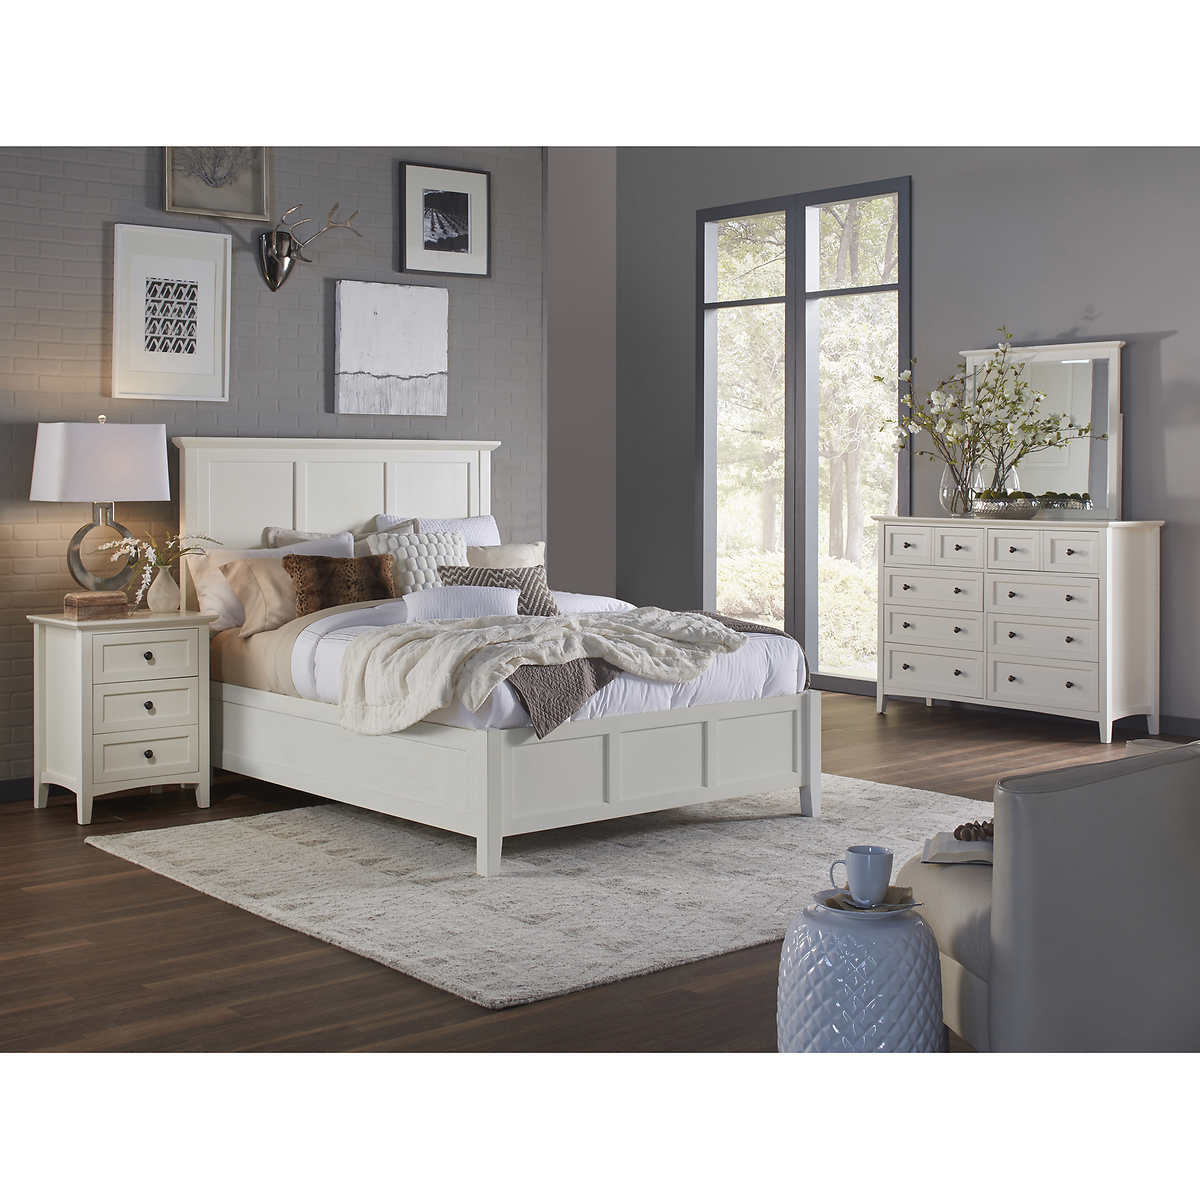 Ikea hemnes bedroom set beauteous hemnes bed frame queen ikea design ideas - Bedroom sets at ikea ...